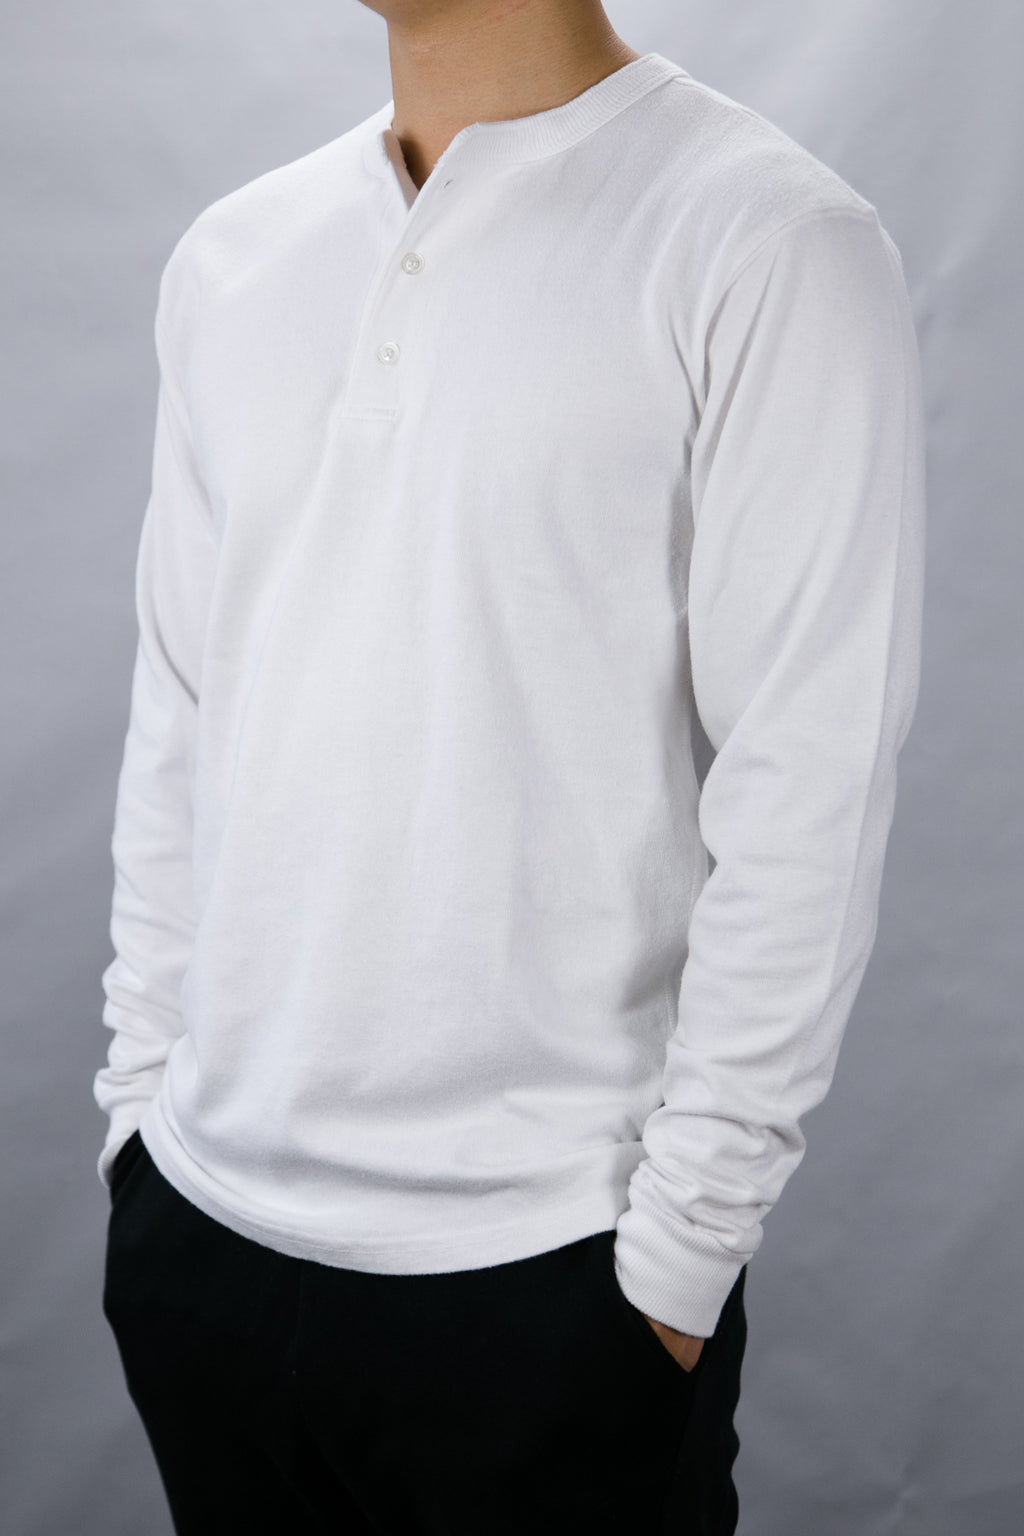 Goodwear 9oz Brushed Jersey Henley Neck L/S